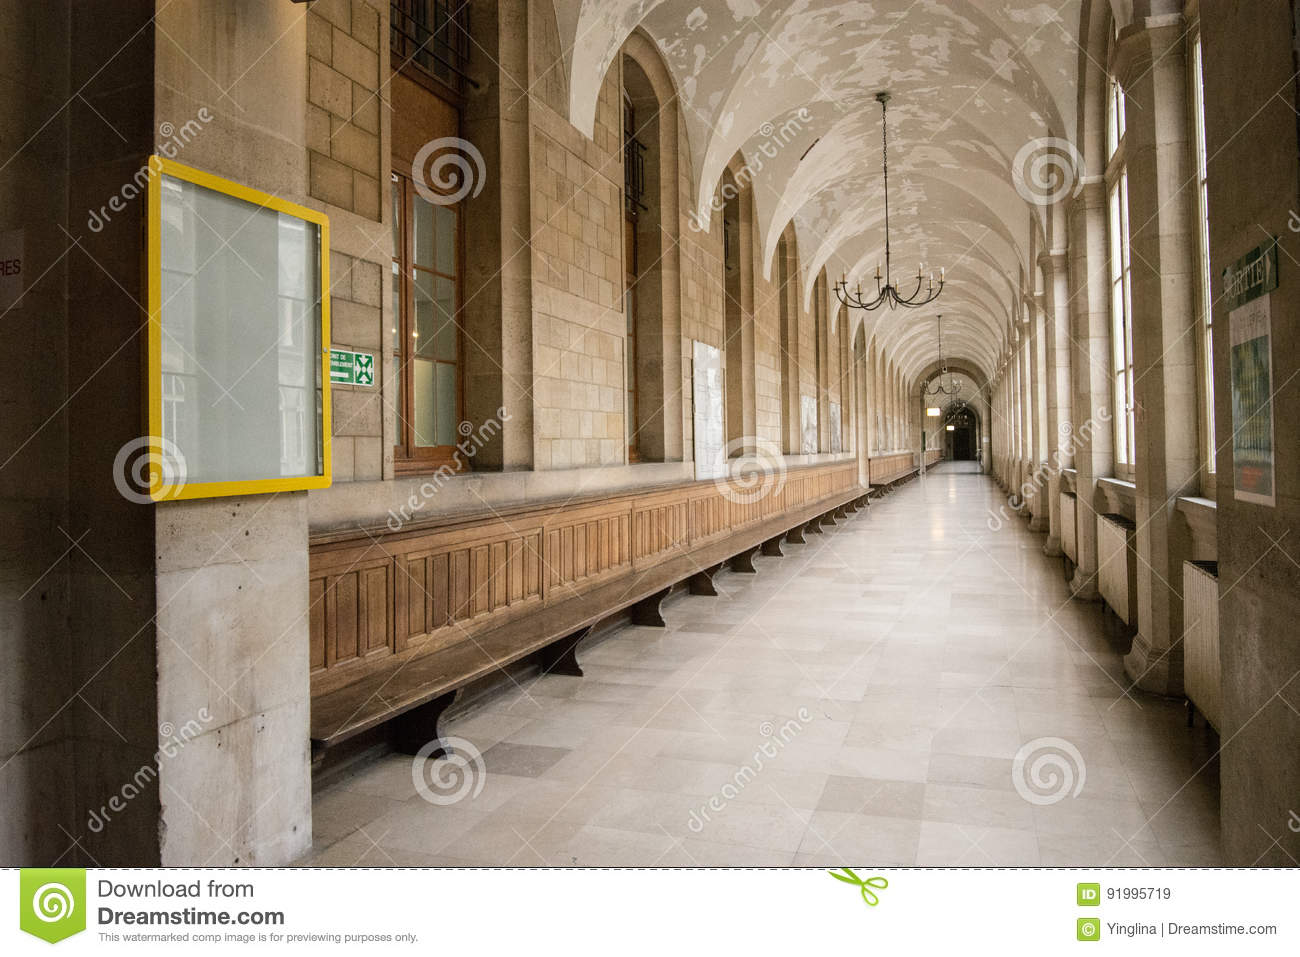 Hospital Hotel-Dieu In Paris Stock Image - Image of garden, place ...